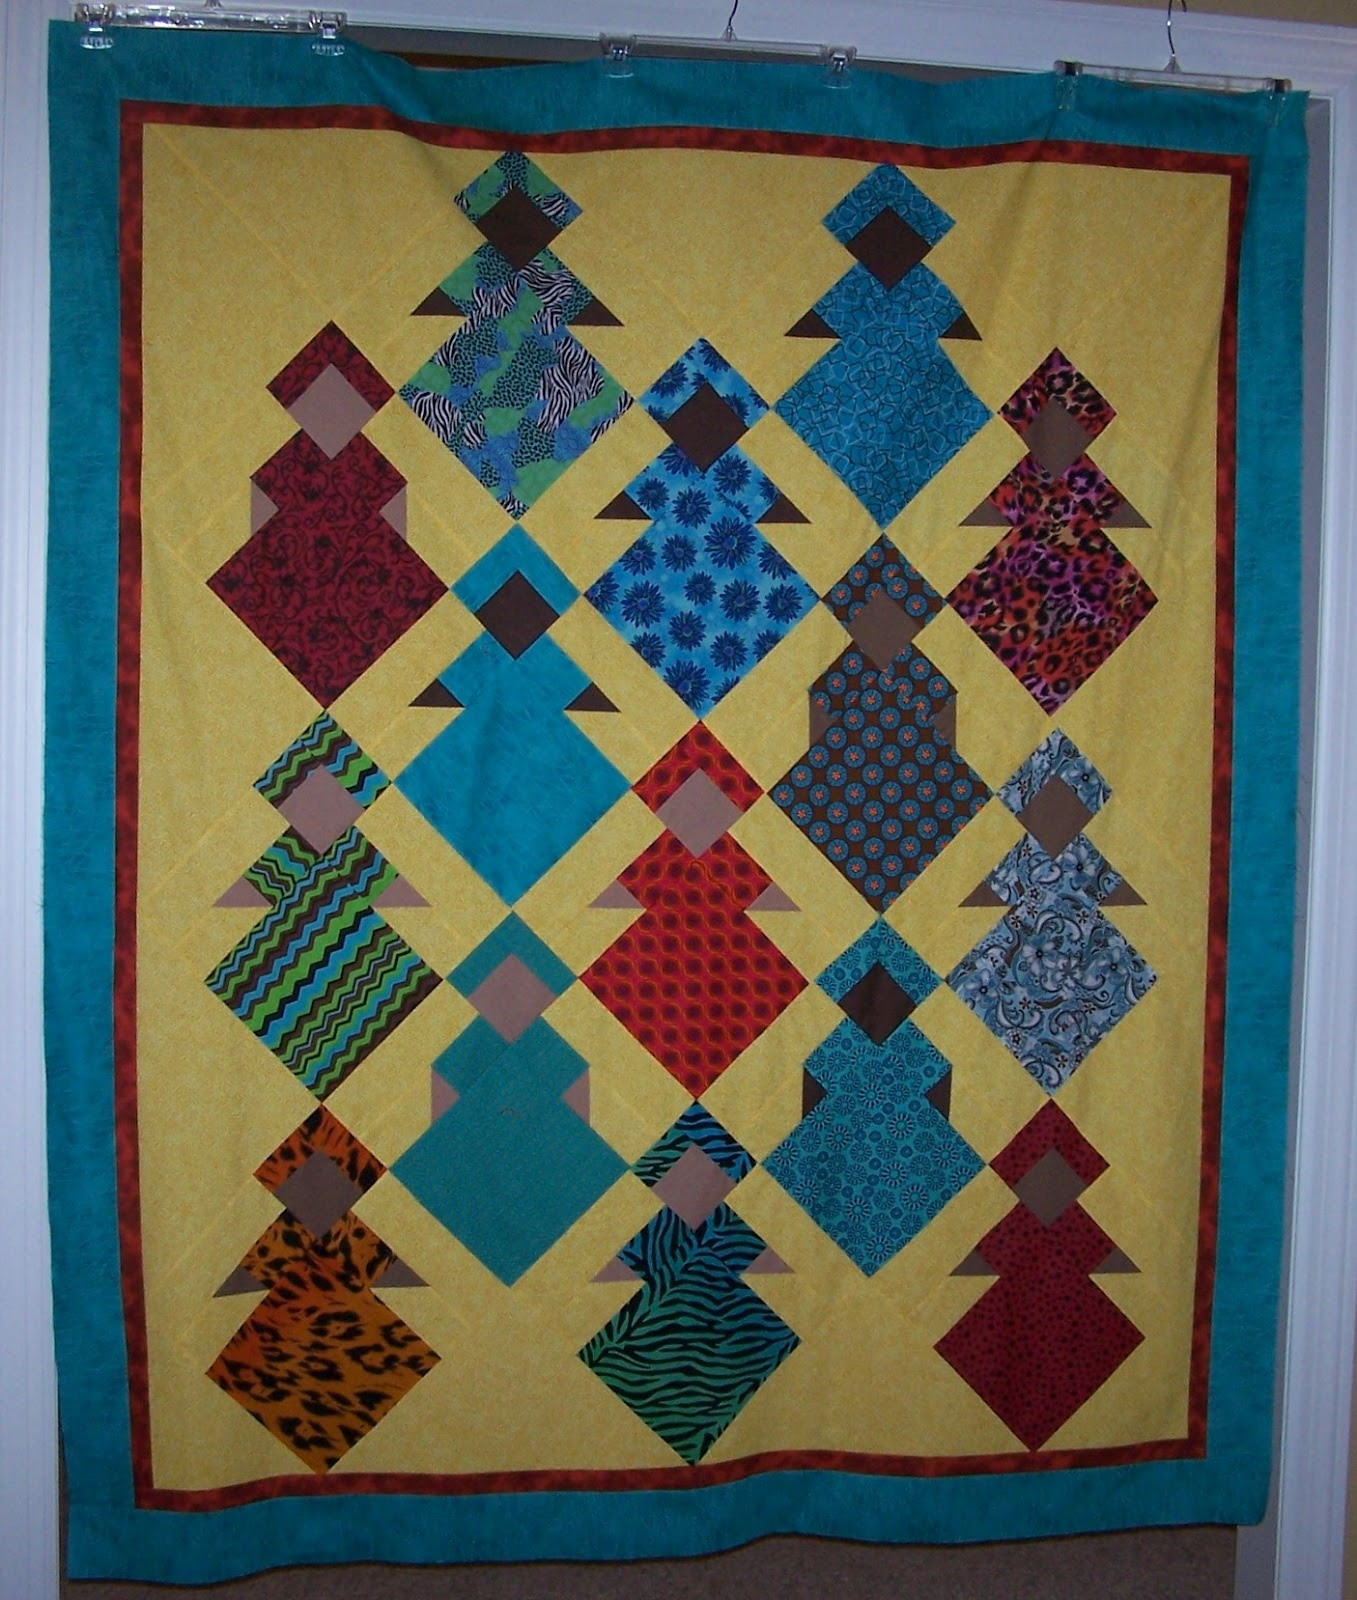 Quilting Designs On Paper : 1000+ ideas about African Quilts on Pinterest Quilts, Quilt Patterns and Batik Quilts